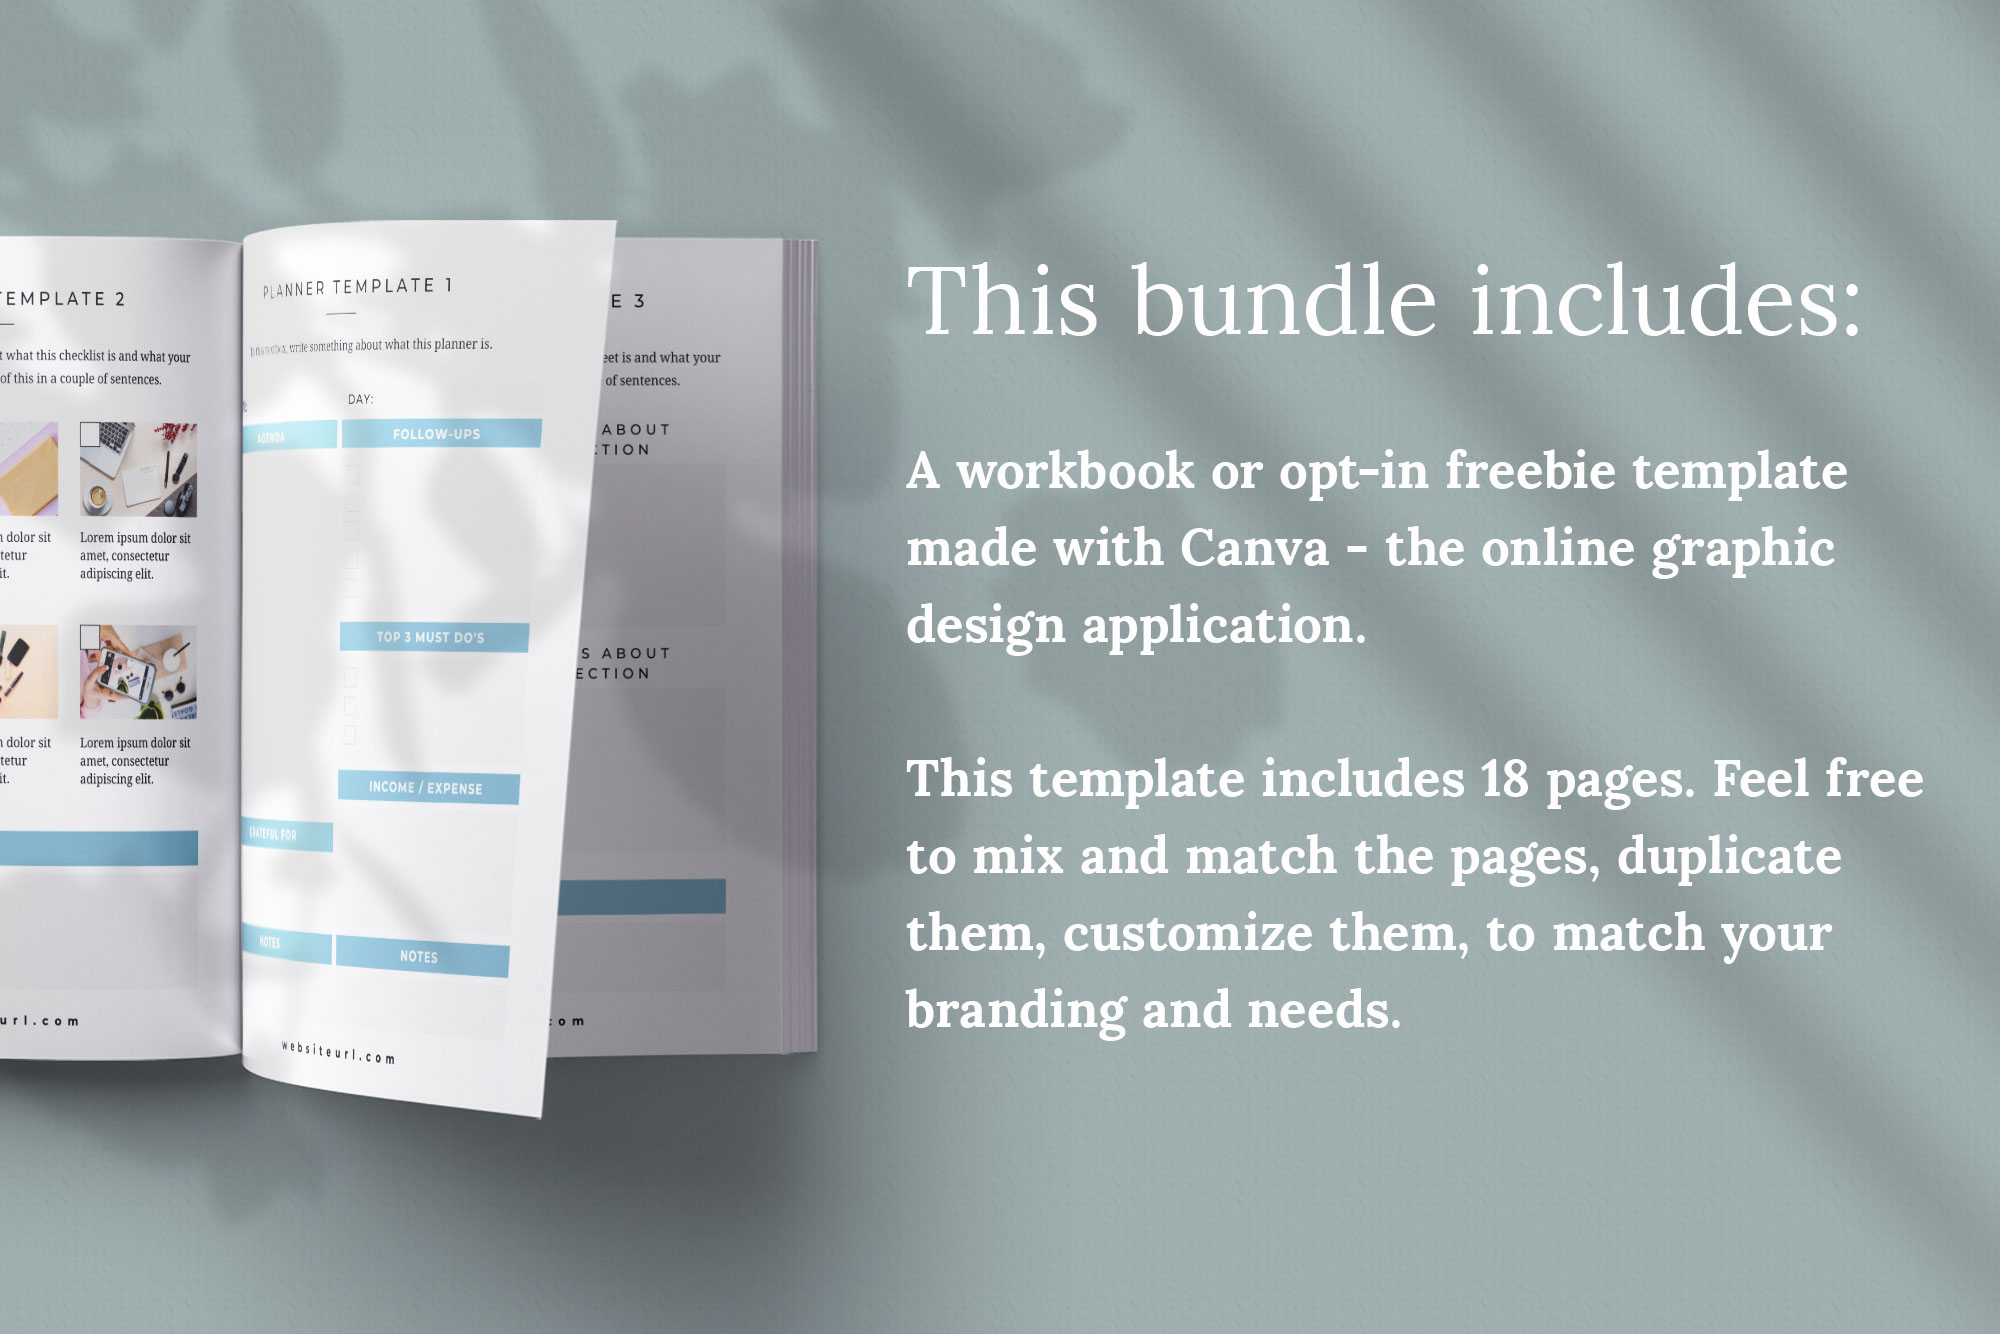 Workbook or Opt-in Freebie Canva Template | Colfax example image 2